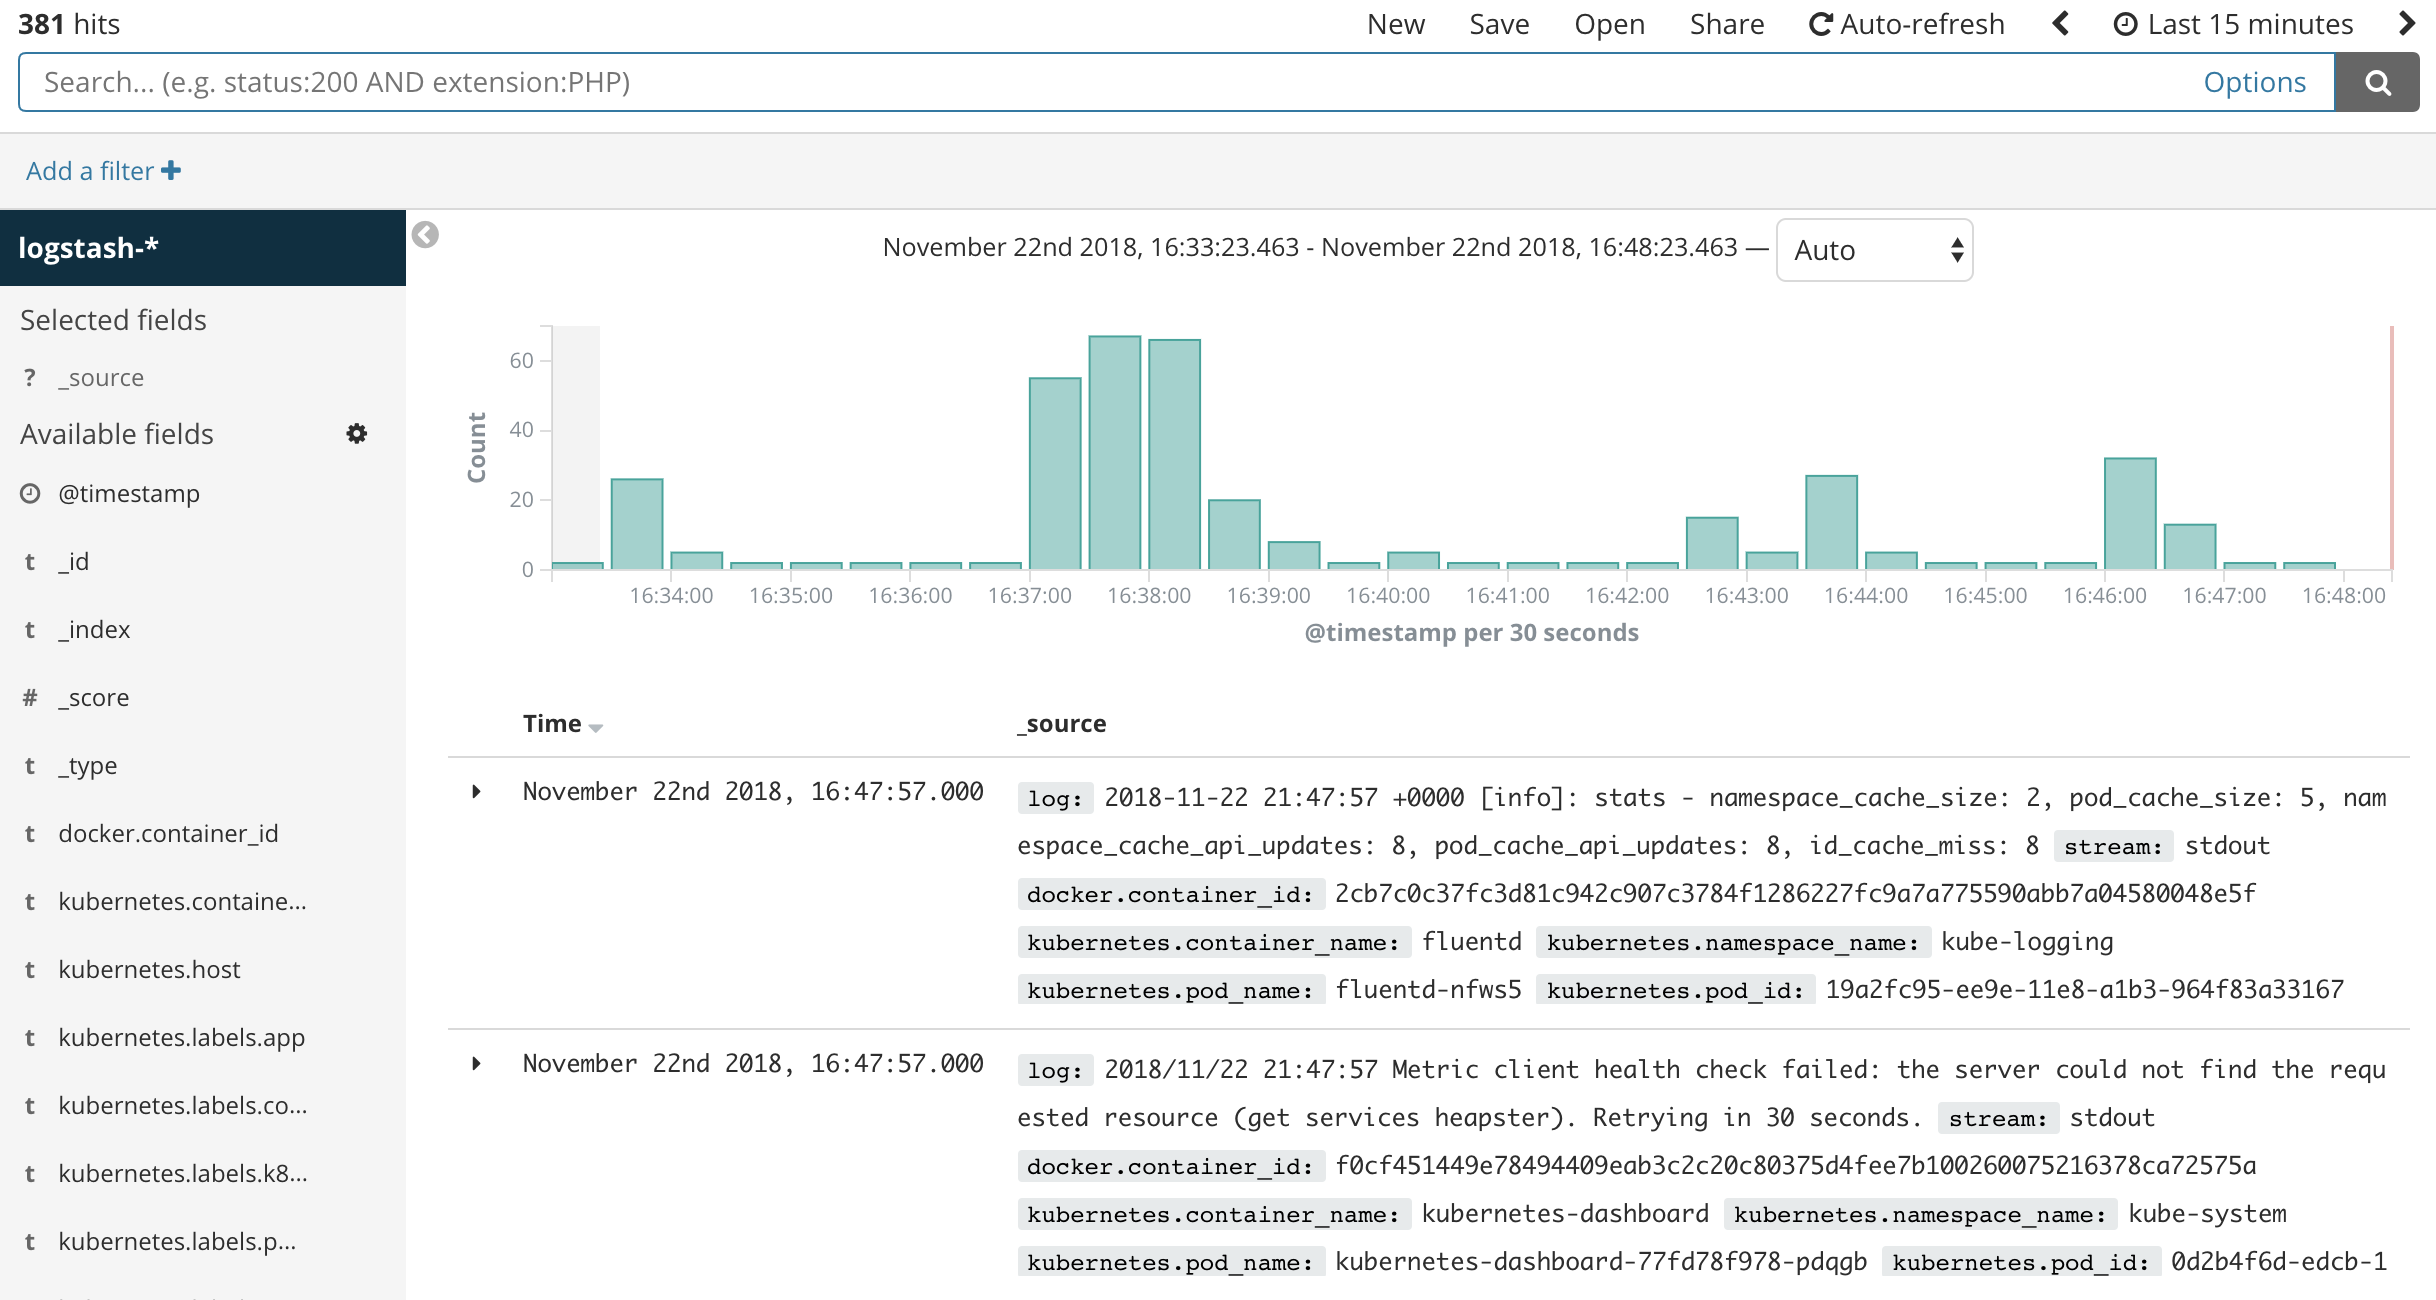 How to Set Up an Elasticsearch, Fluentd and Kibana (EFK) Logging